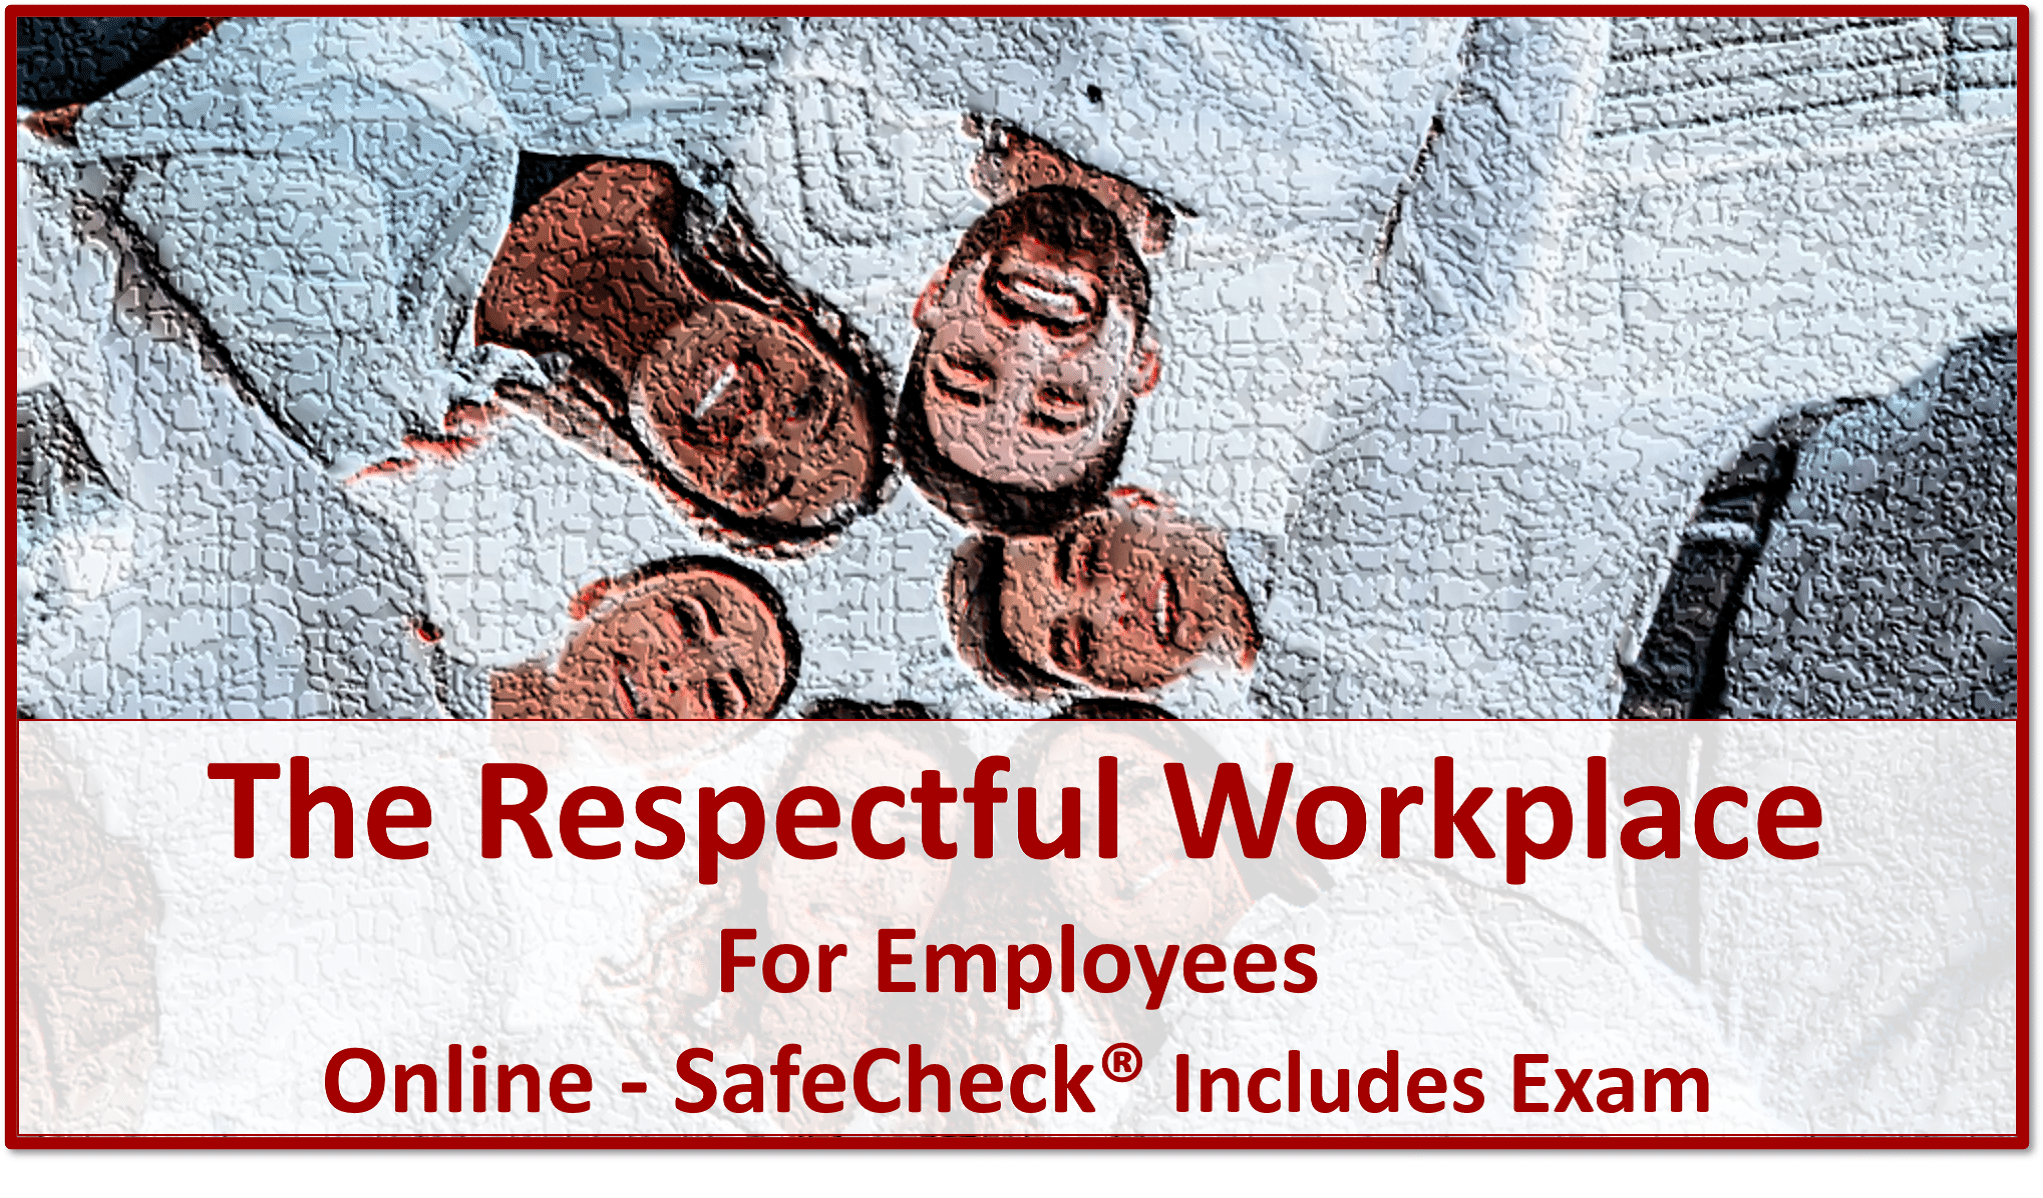 The Respectful Workplace For Employees